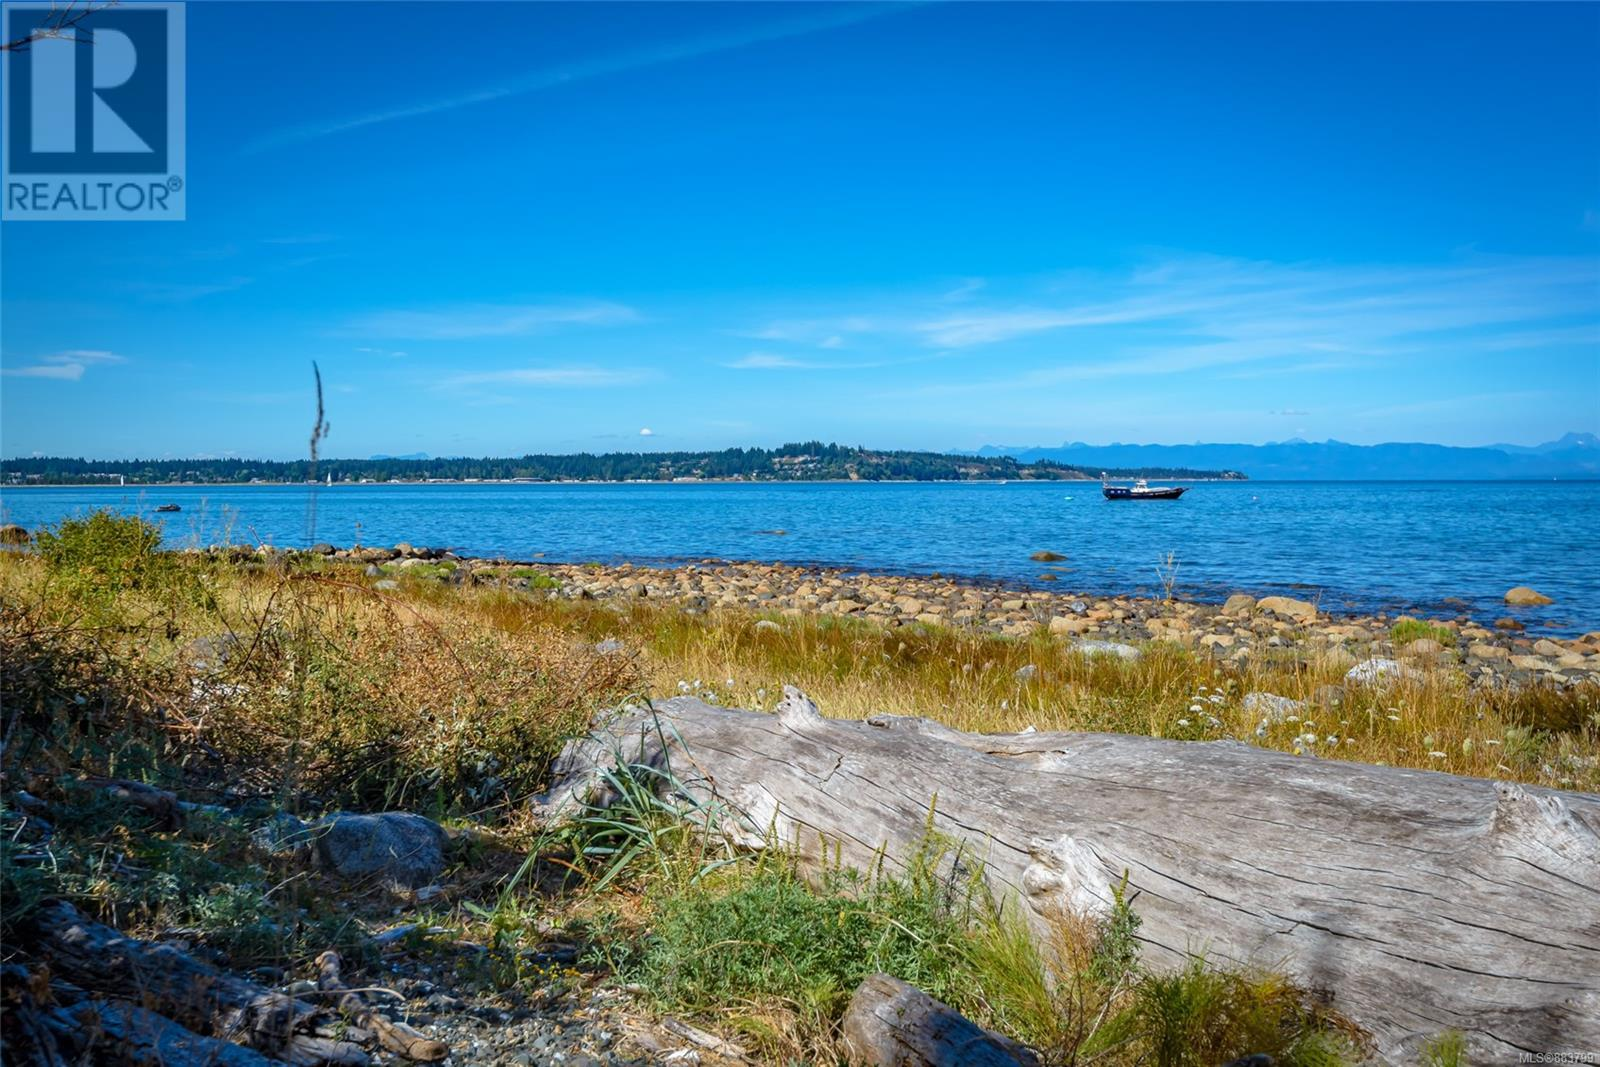 MLS® #883799 - Courtenay House For sale Image #79